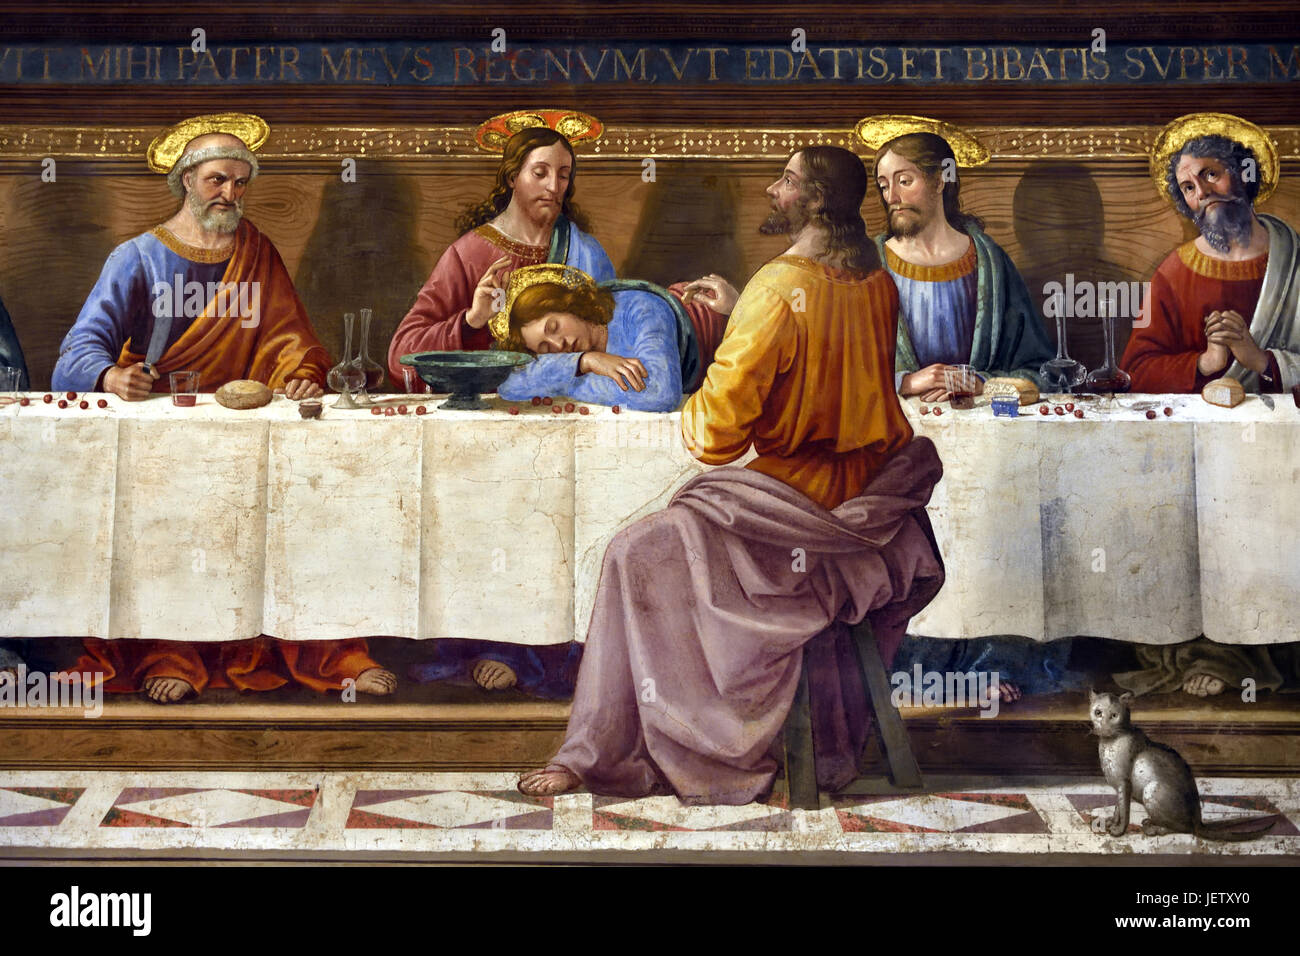 The Last Supper 1480 is a fresco depicting the Last Supper of Jesus by the Italian Renaissance artist Domenico Ghirlandaio - Stock Image